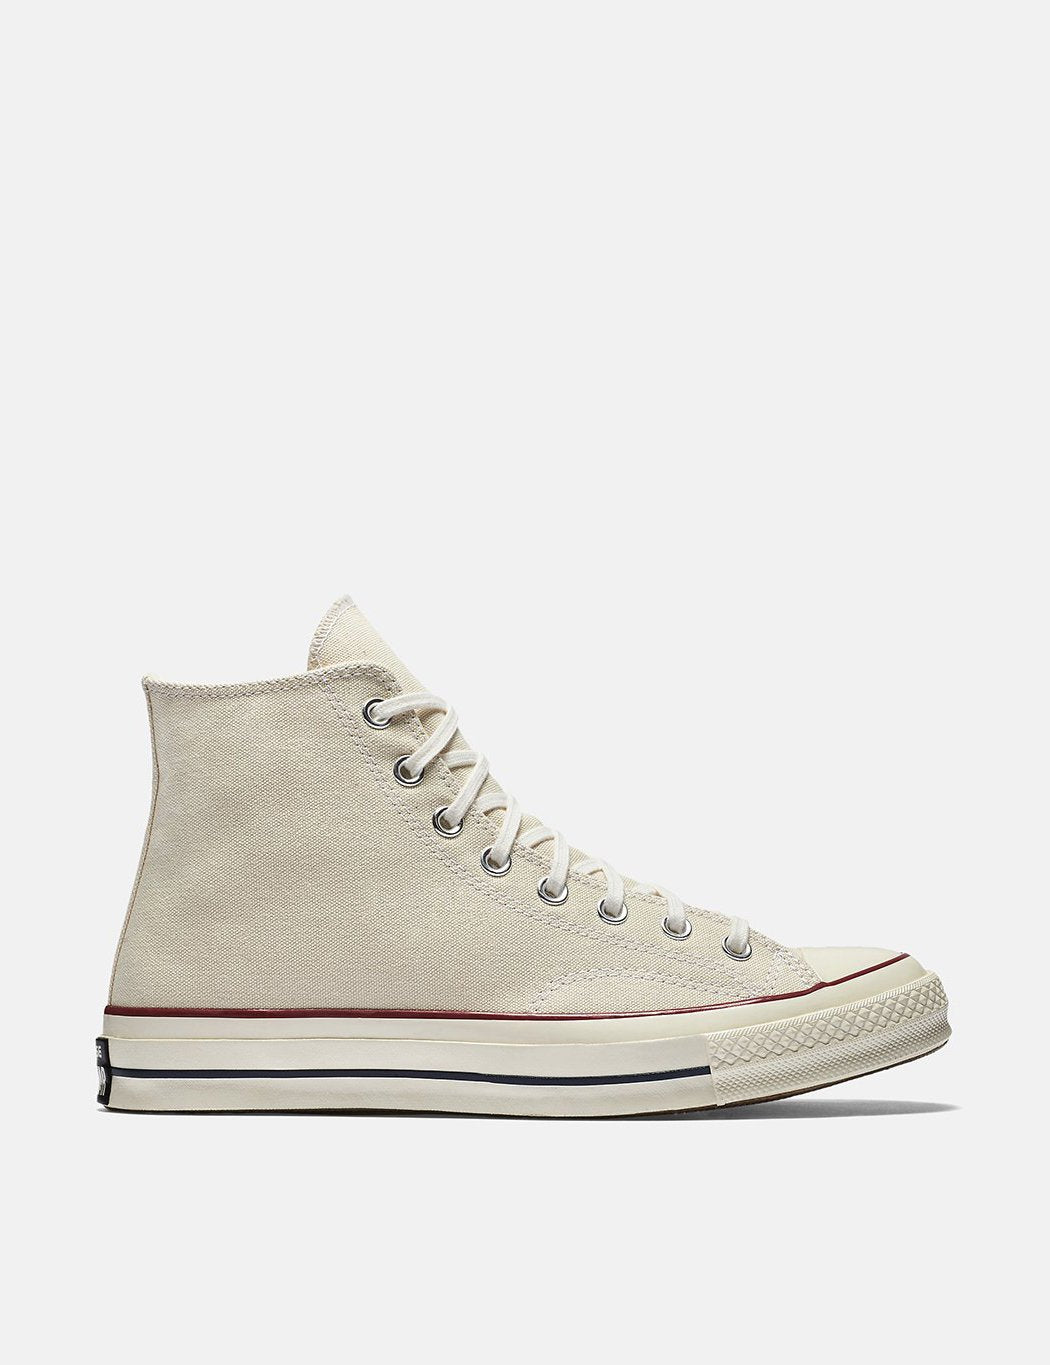 73008df3aecd67 Converse 70 s Chuck Taylor Hi 144755C (Canvas) in Parchment